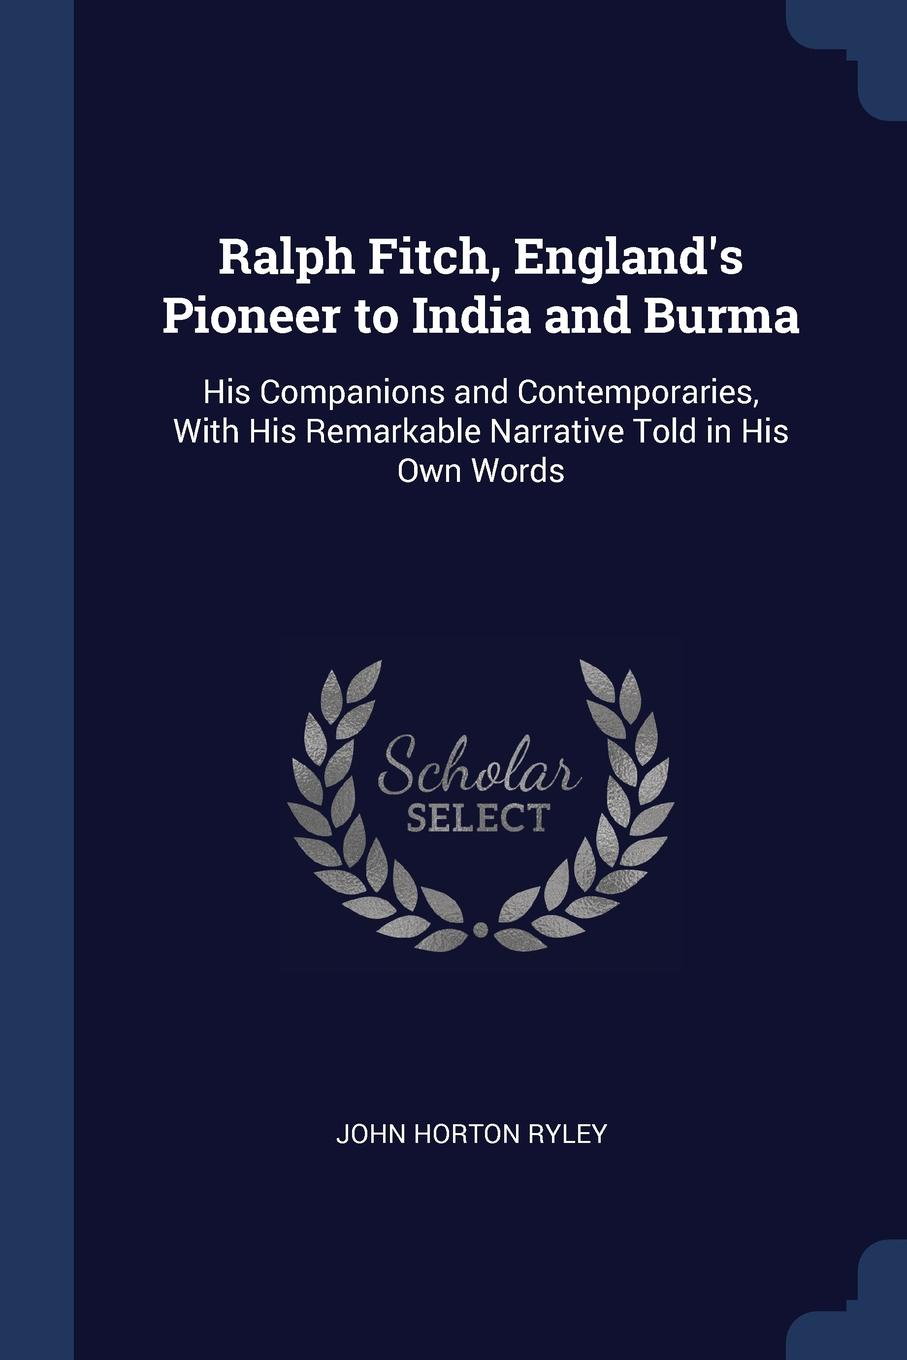 John Horton Ryley Ralph Fitch, E Pioneer to India and Burma. His Companions Contemporaries, With Remarkable Narrative Told in Own Words